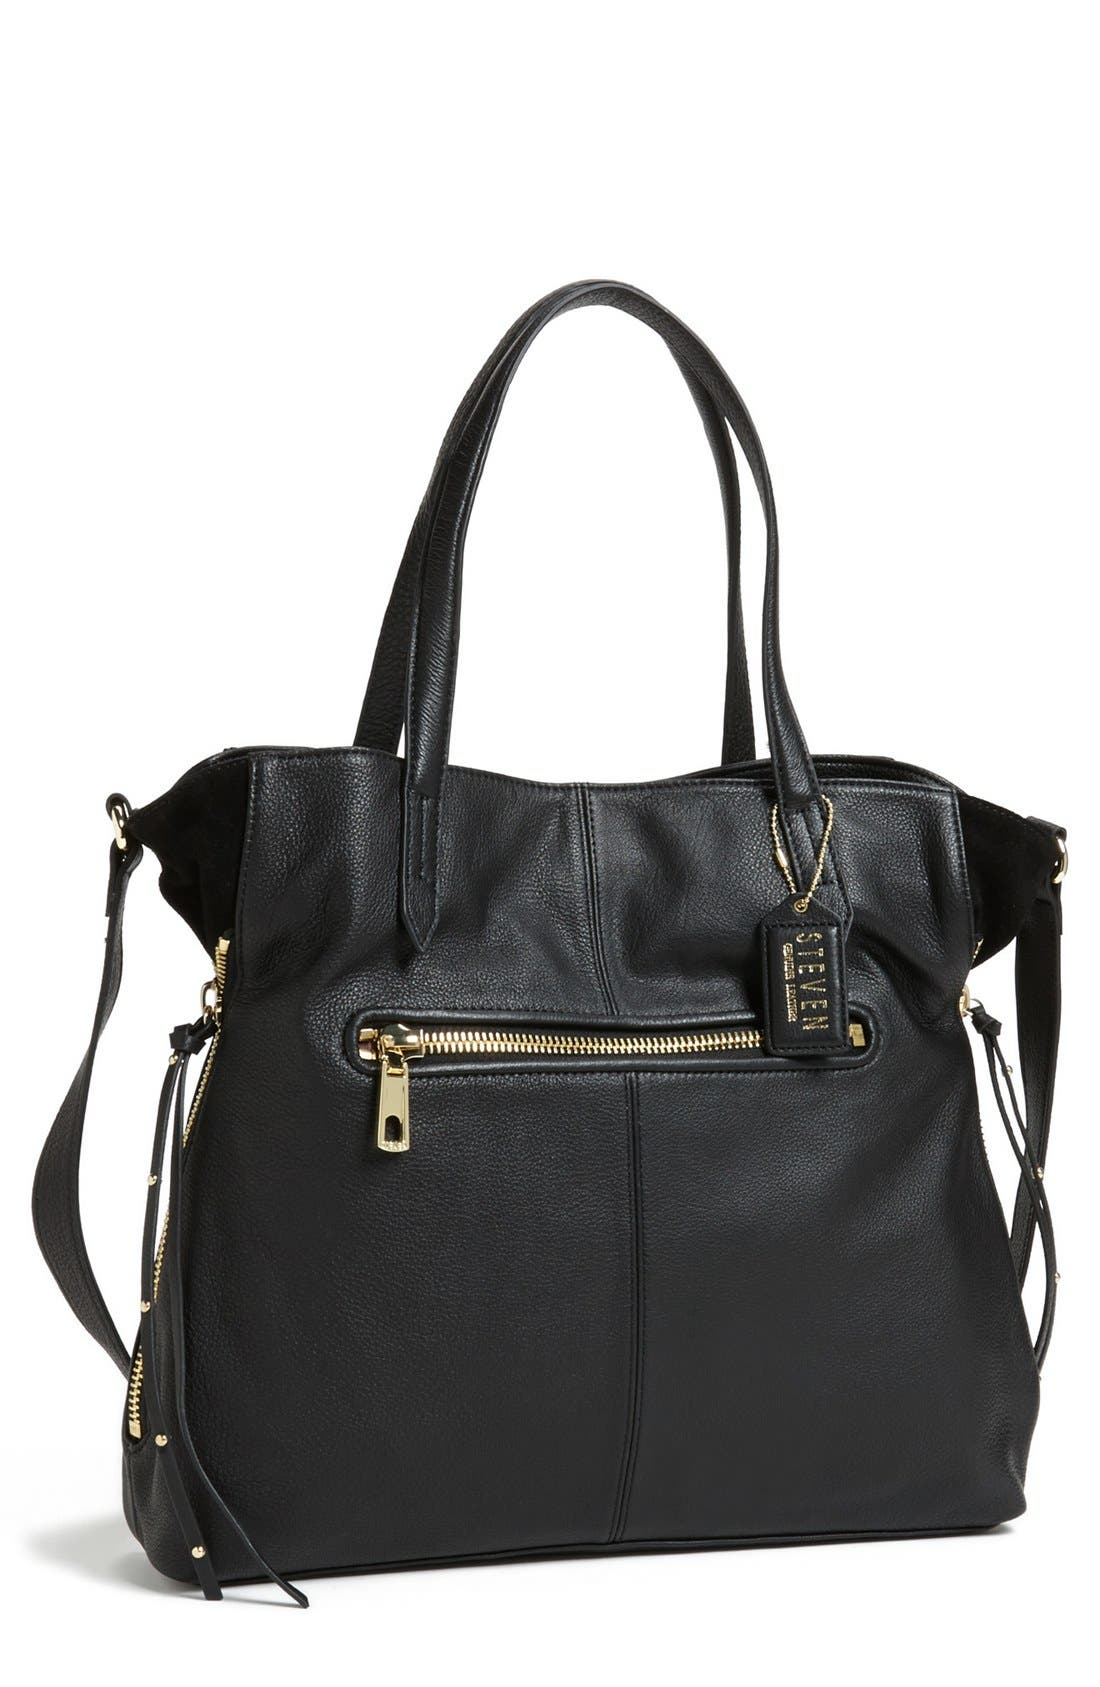 Alternate Image 1 Selected - Steven by Steve Madden 'Prague' Leather Tote